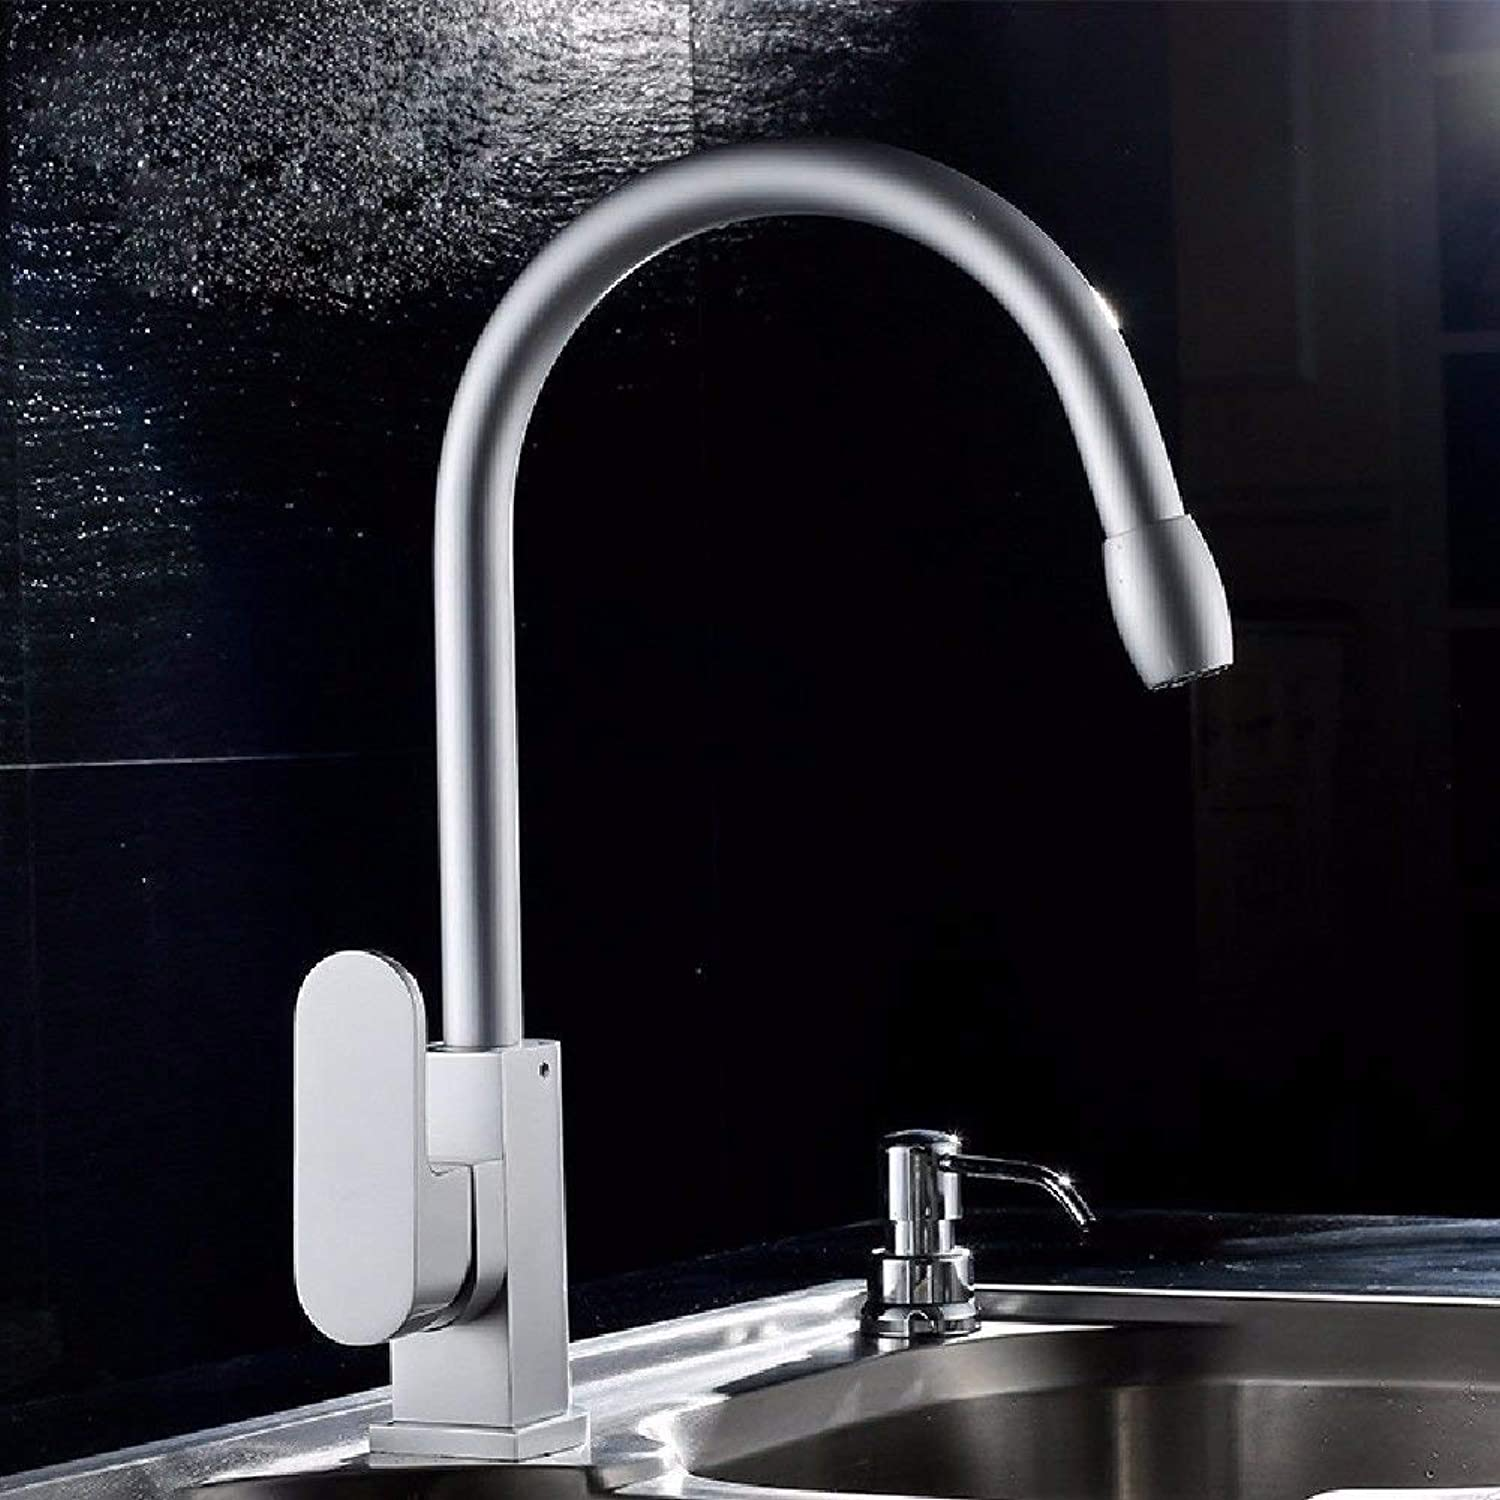 Kitchen tap Kitchen Sink tap Space Aluminum Kitchen Sink tap Sink Faucet (color   -, Size   -)